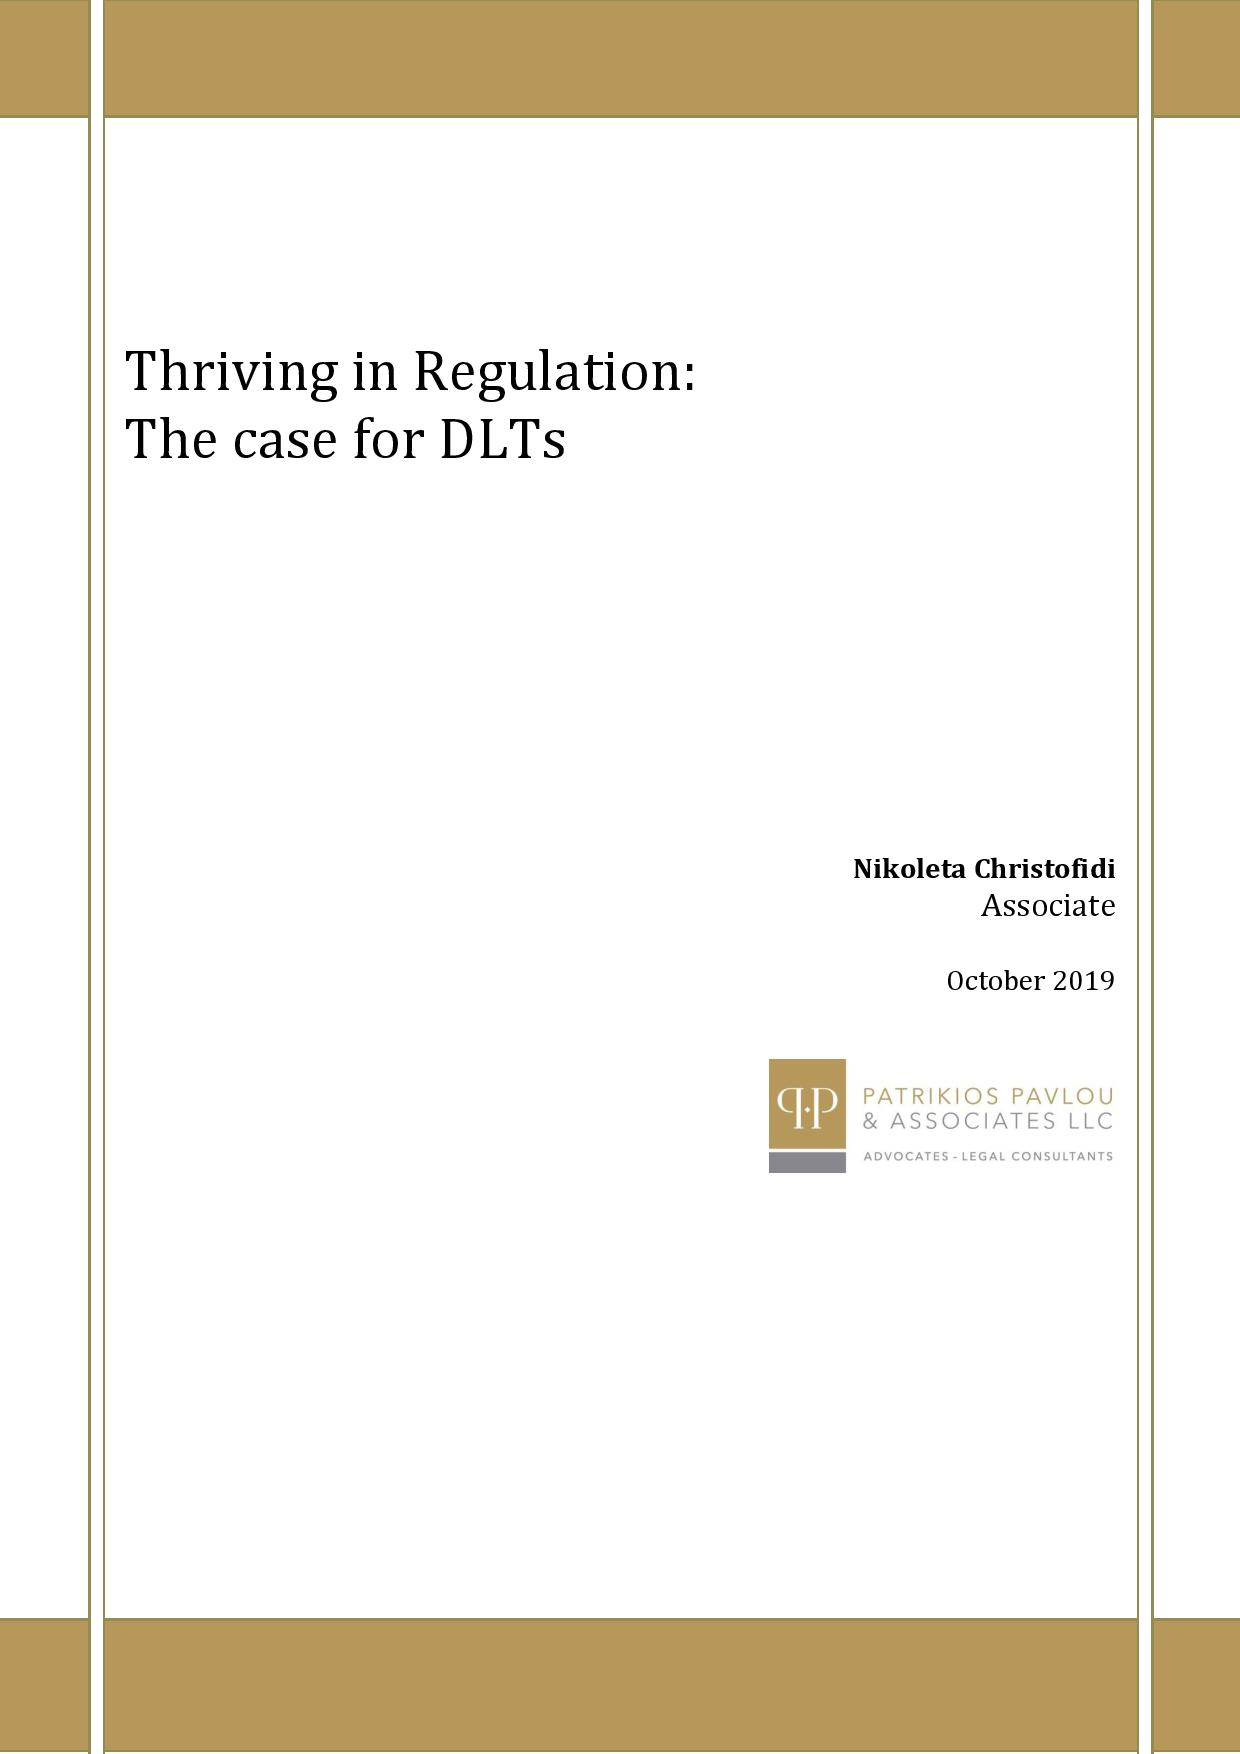 Patrikios Pavlou & Associates LLC: Thriving in Regulation: The case for DLTs